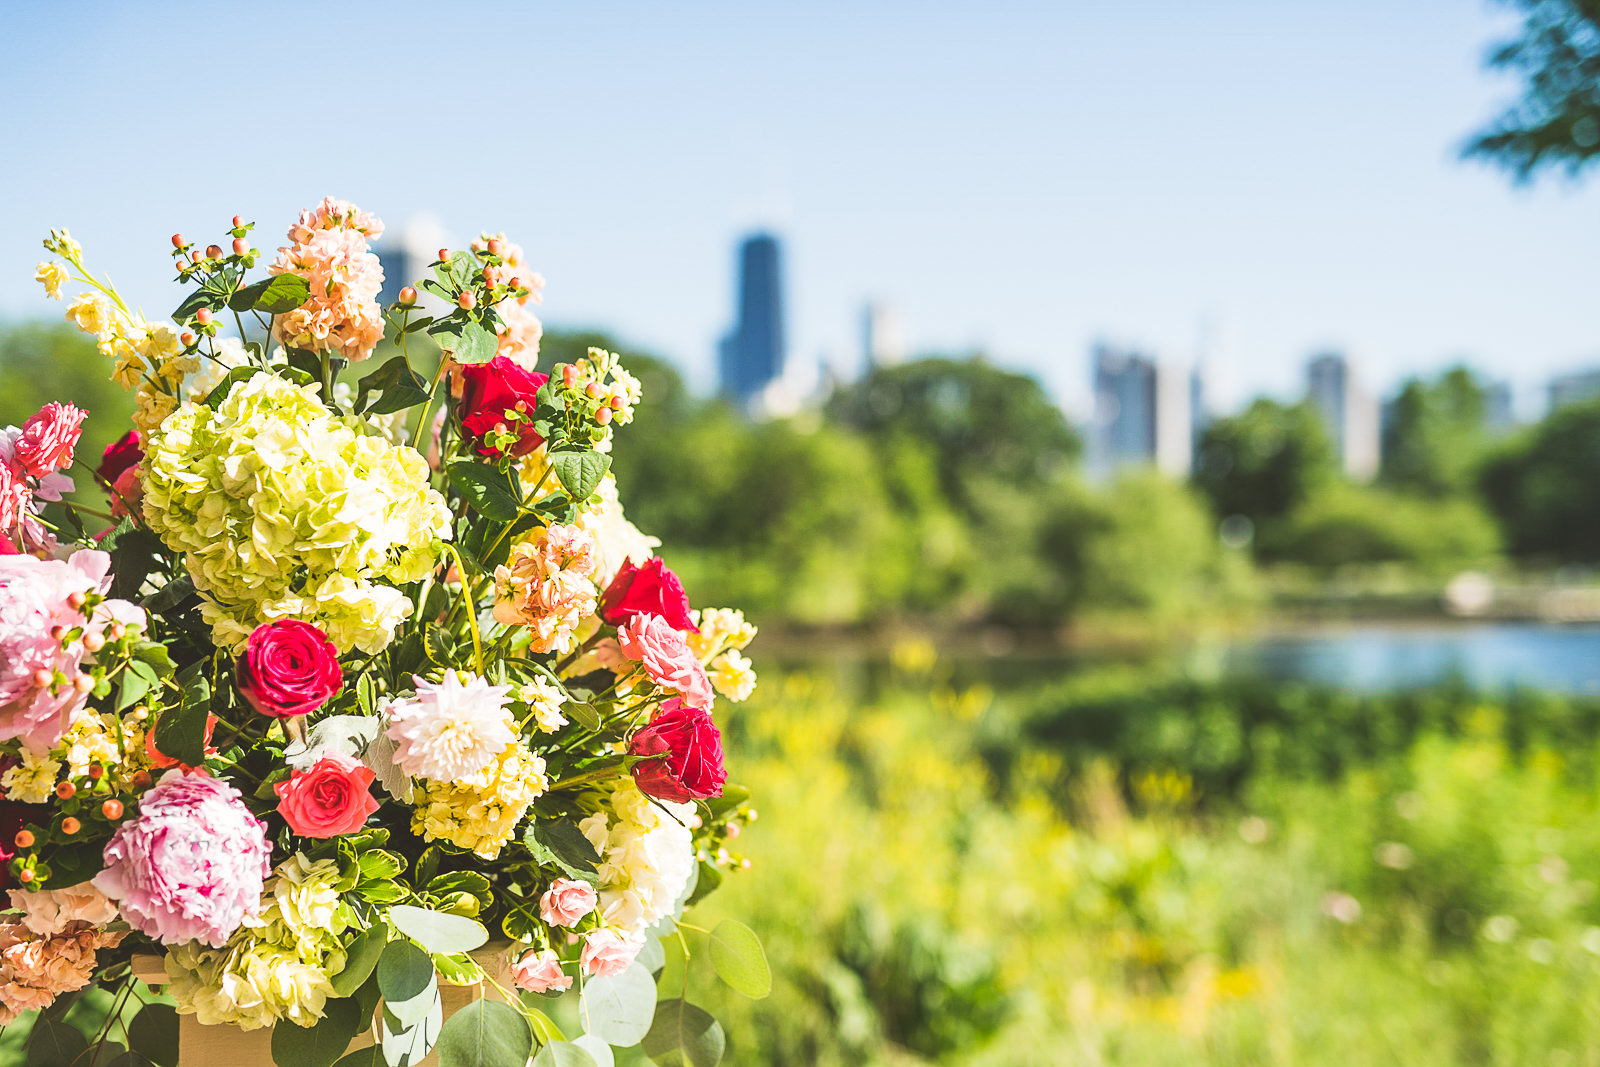 39 1 flowers outside - Natalie + Alan // Chicago Wedding Photographer at Cafe Brauer